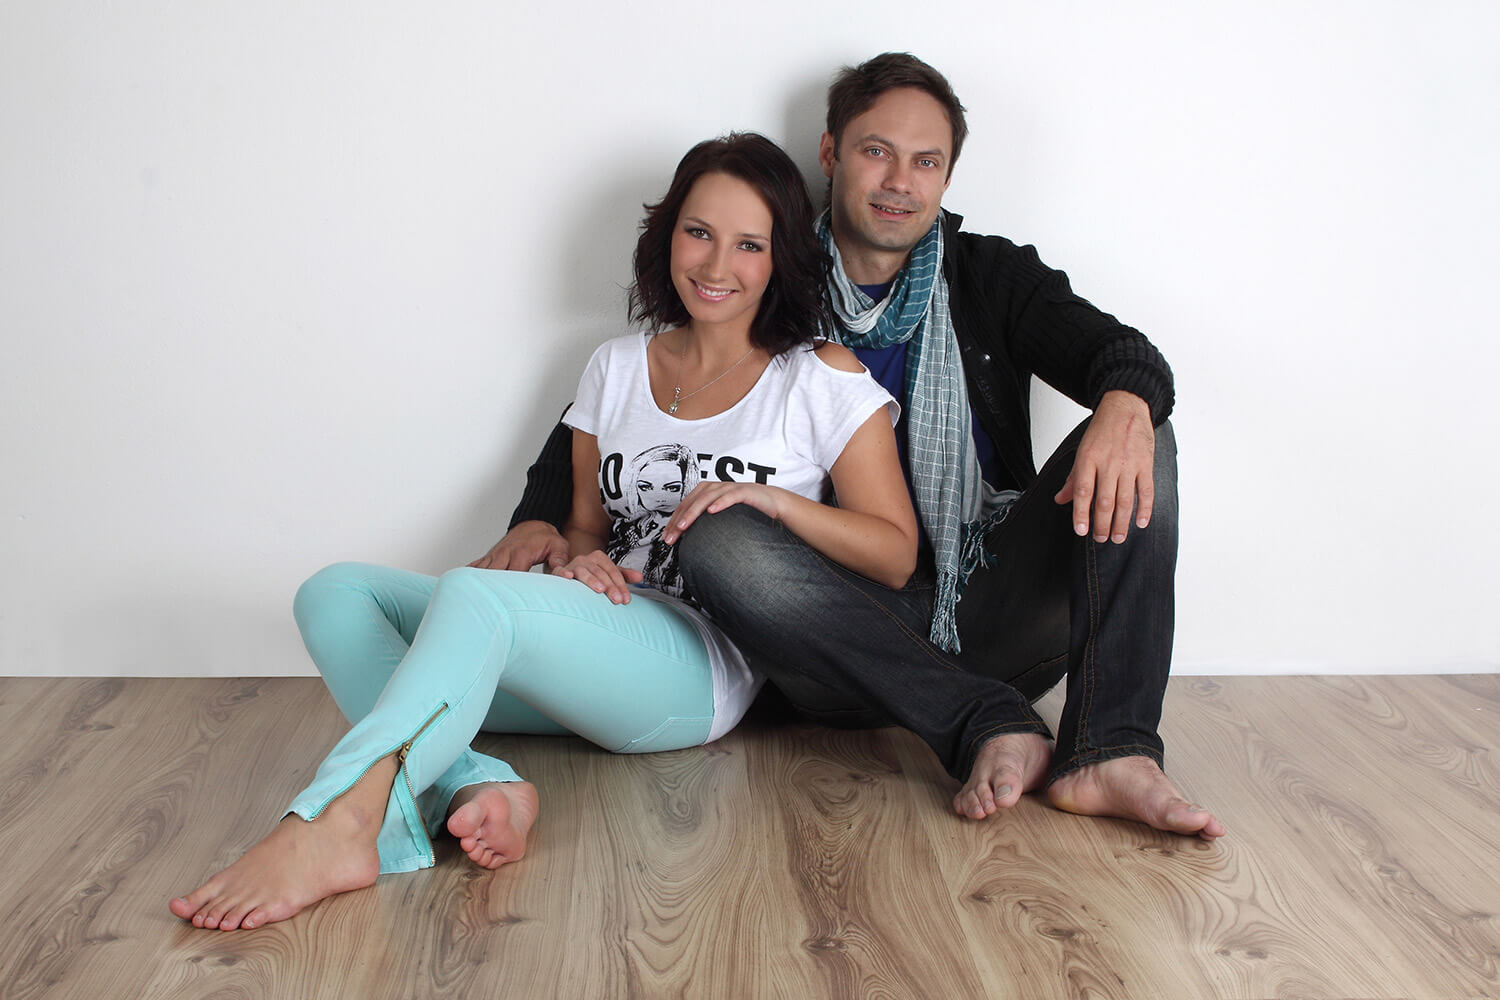 couple photo of a woman and a man sitting on the floor on a light background